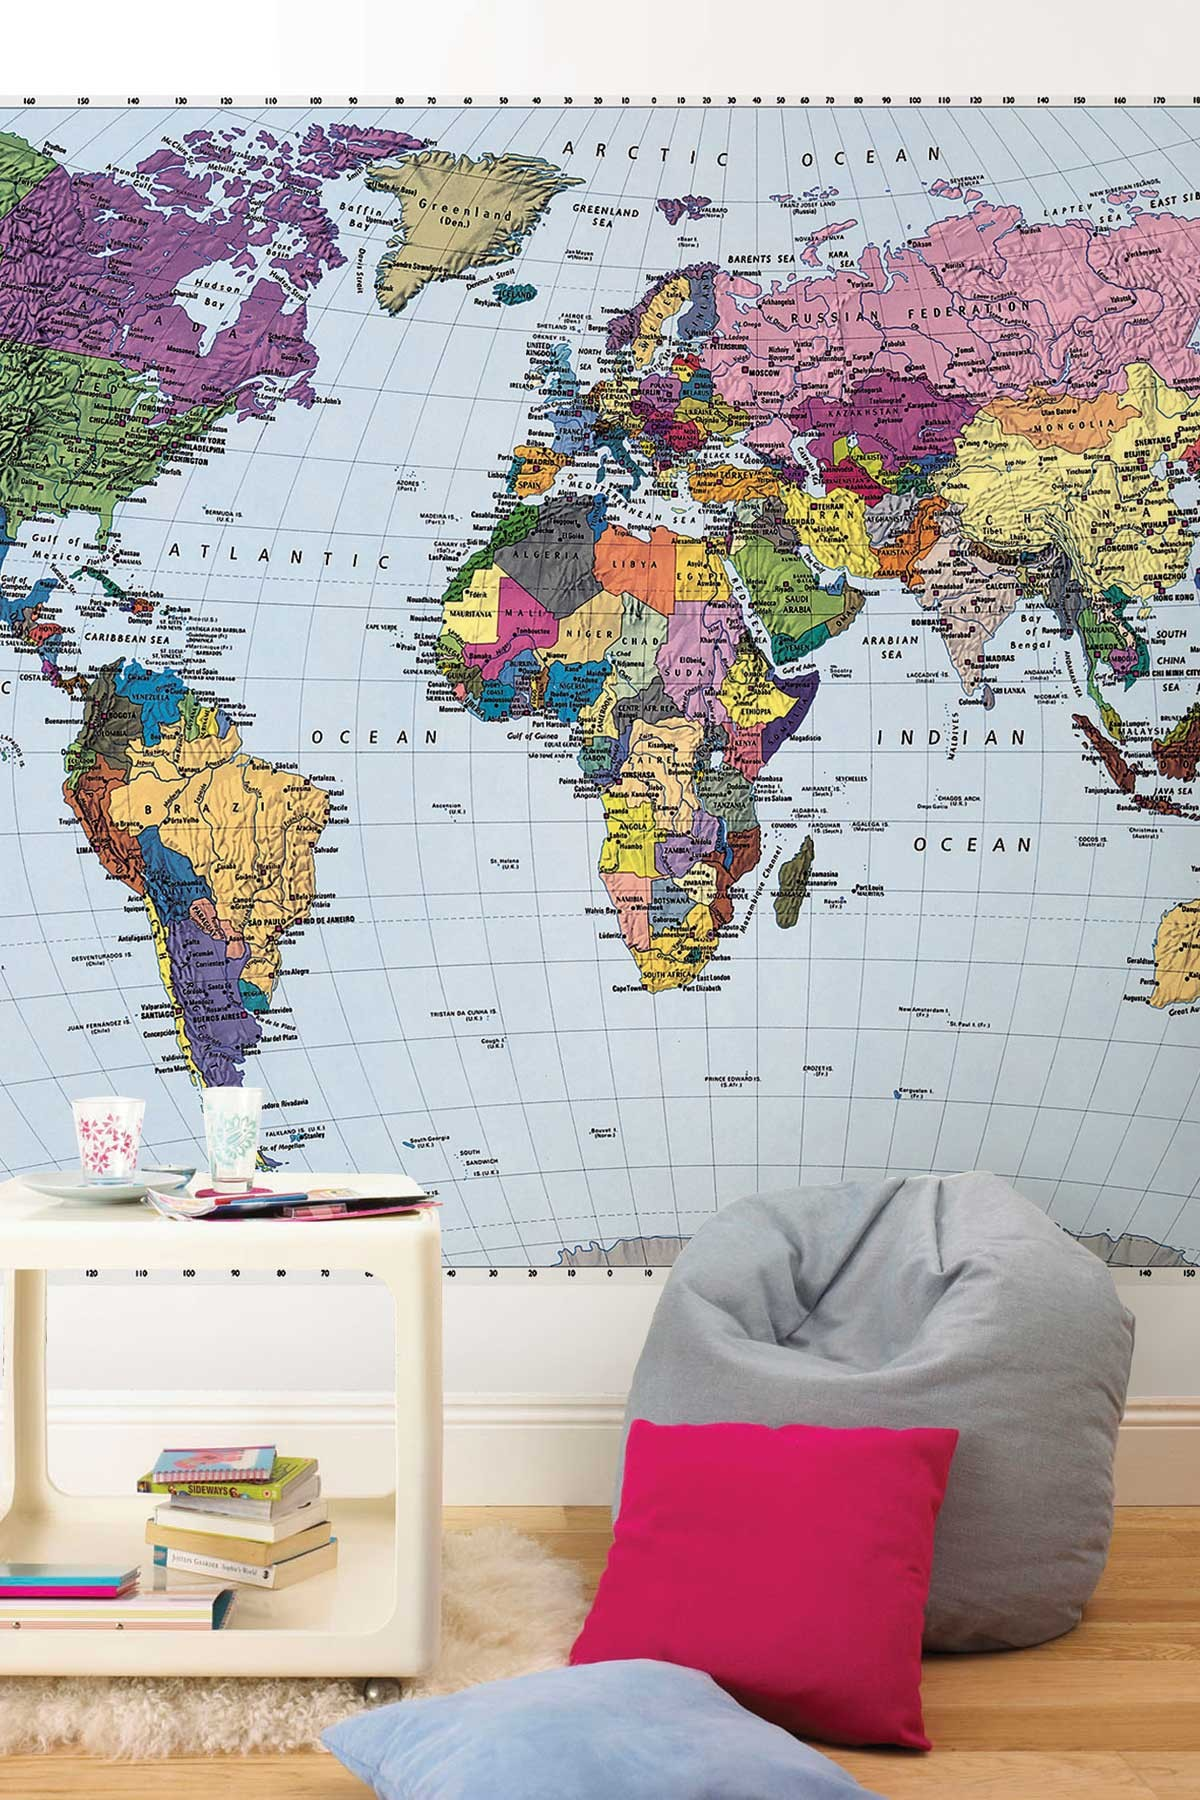 World map 4 050 photo map of the world 270 x 188cm wall world map 4 050 photo map of the world 270 x 188cm wall mural gumiabroncs Image collections